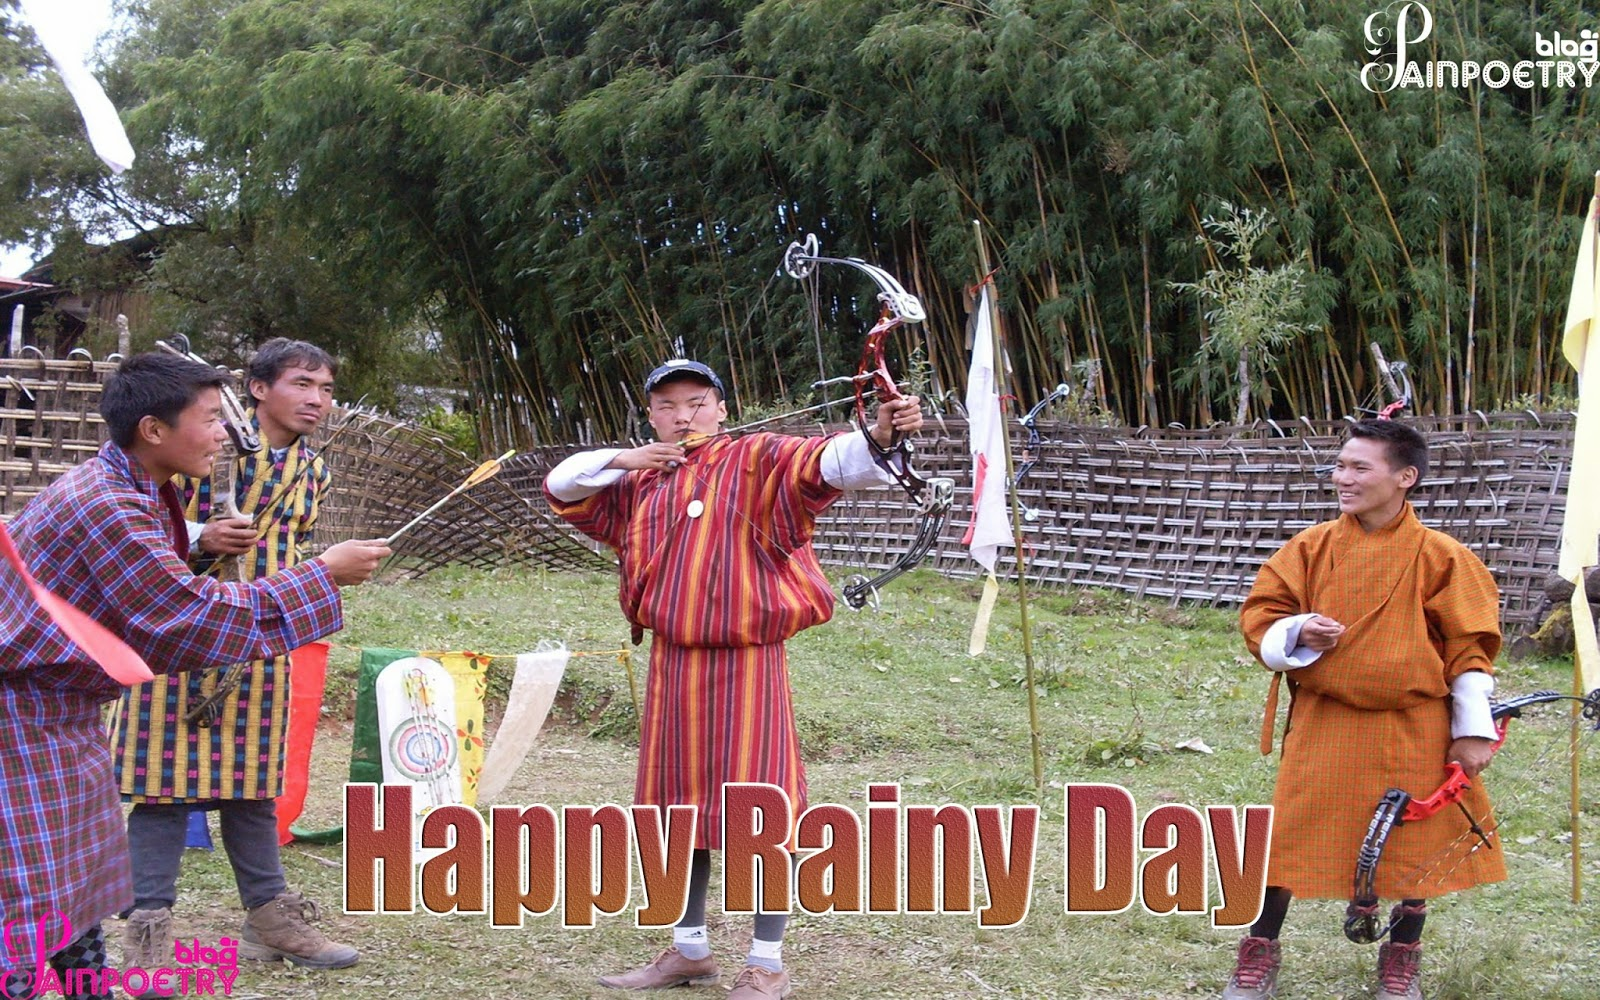 Rainy-Day-Image-Rainy-Day-Photo-Wide